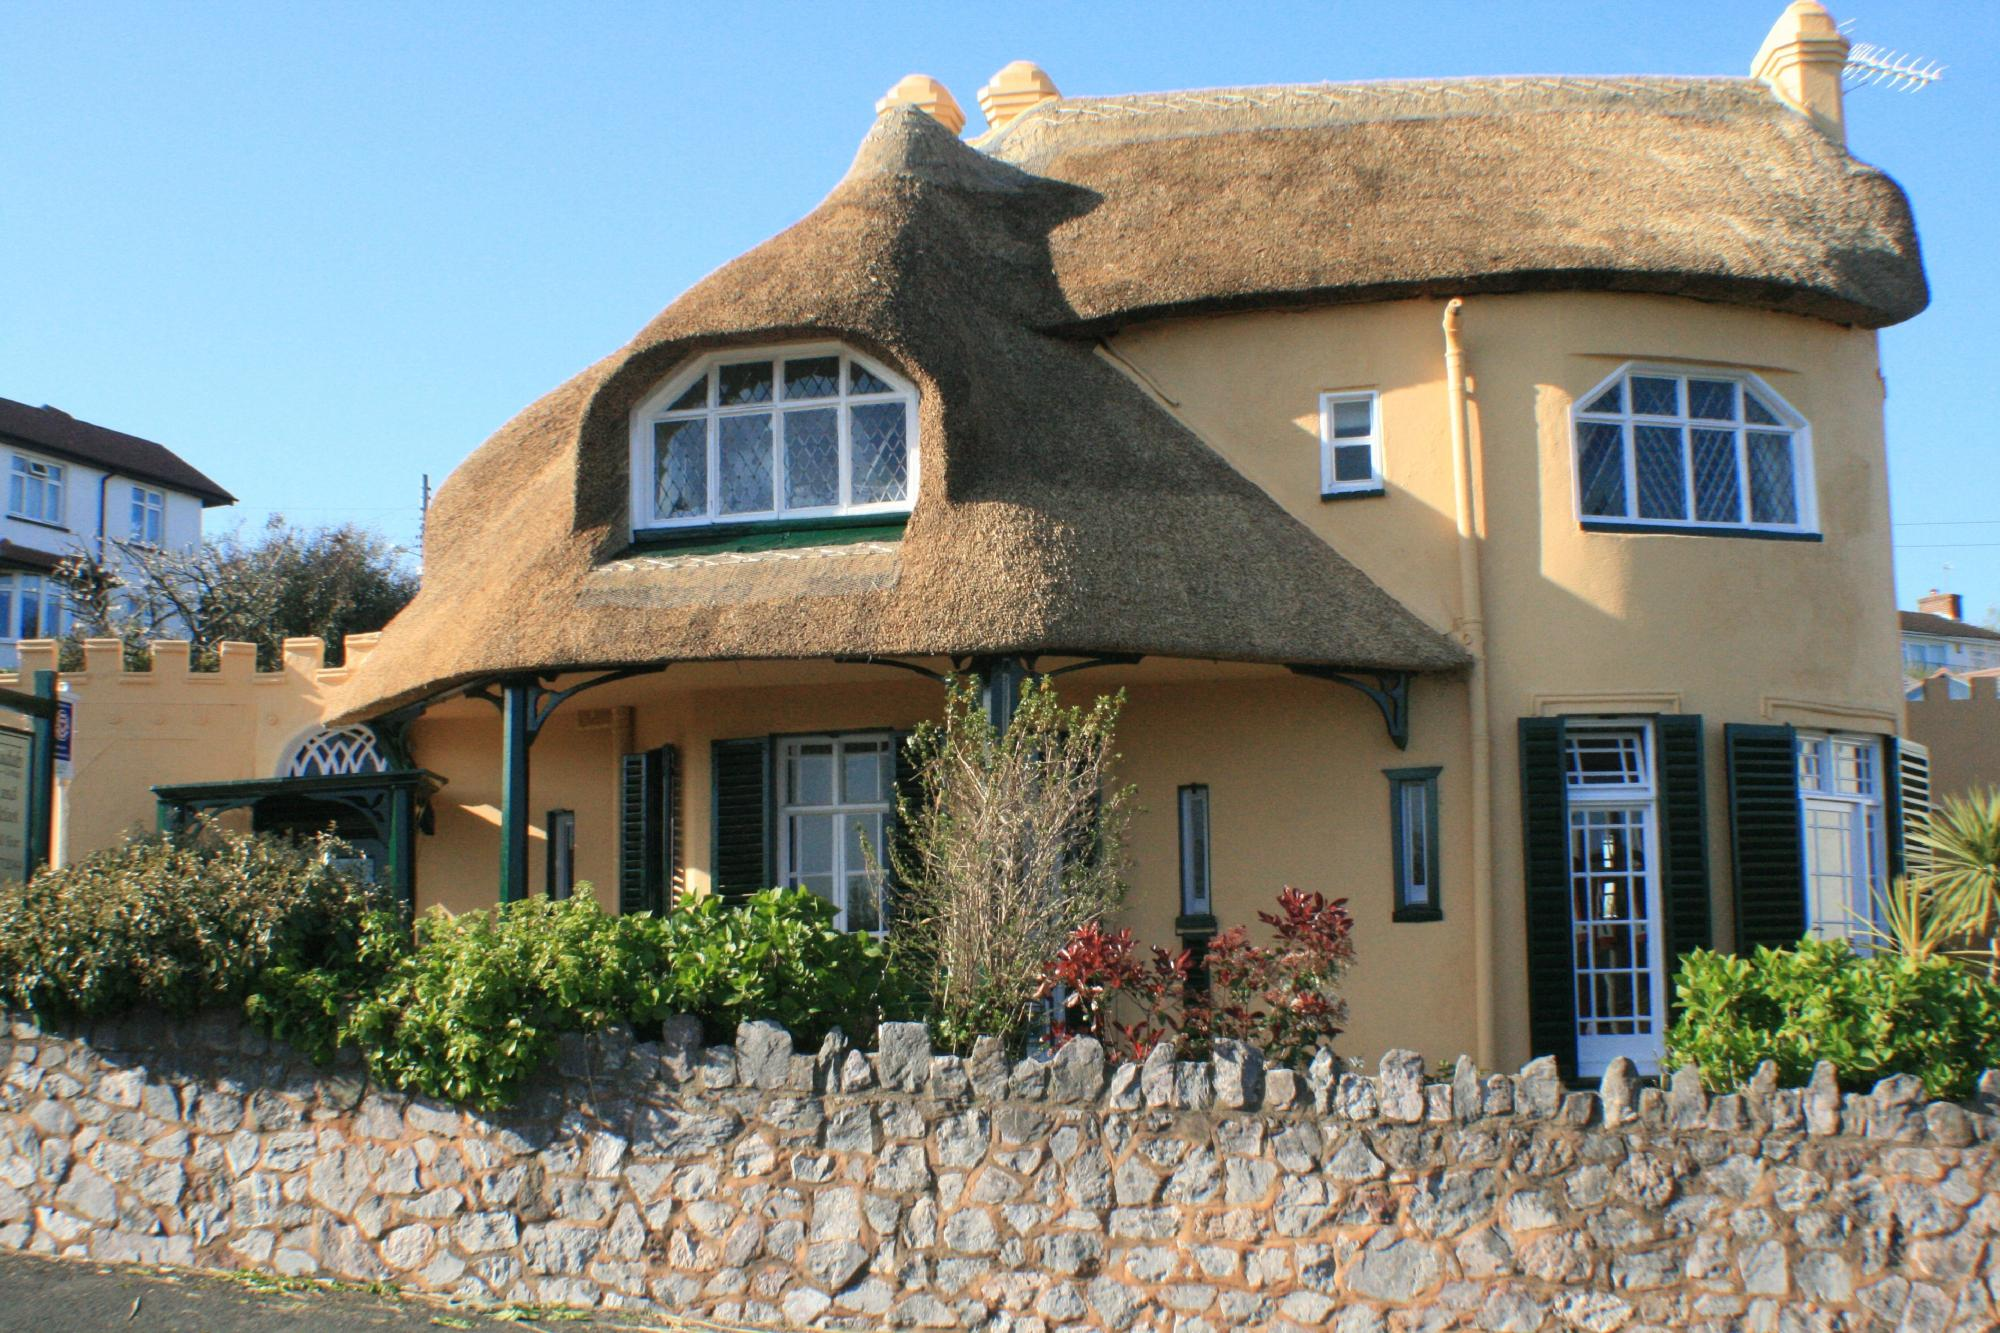 The Minadab Cottage